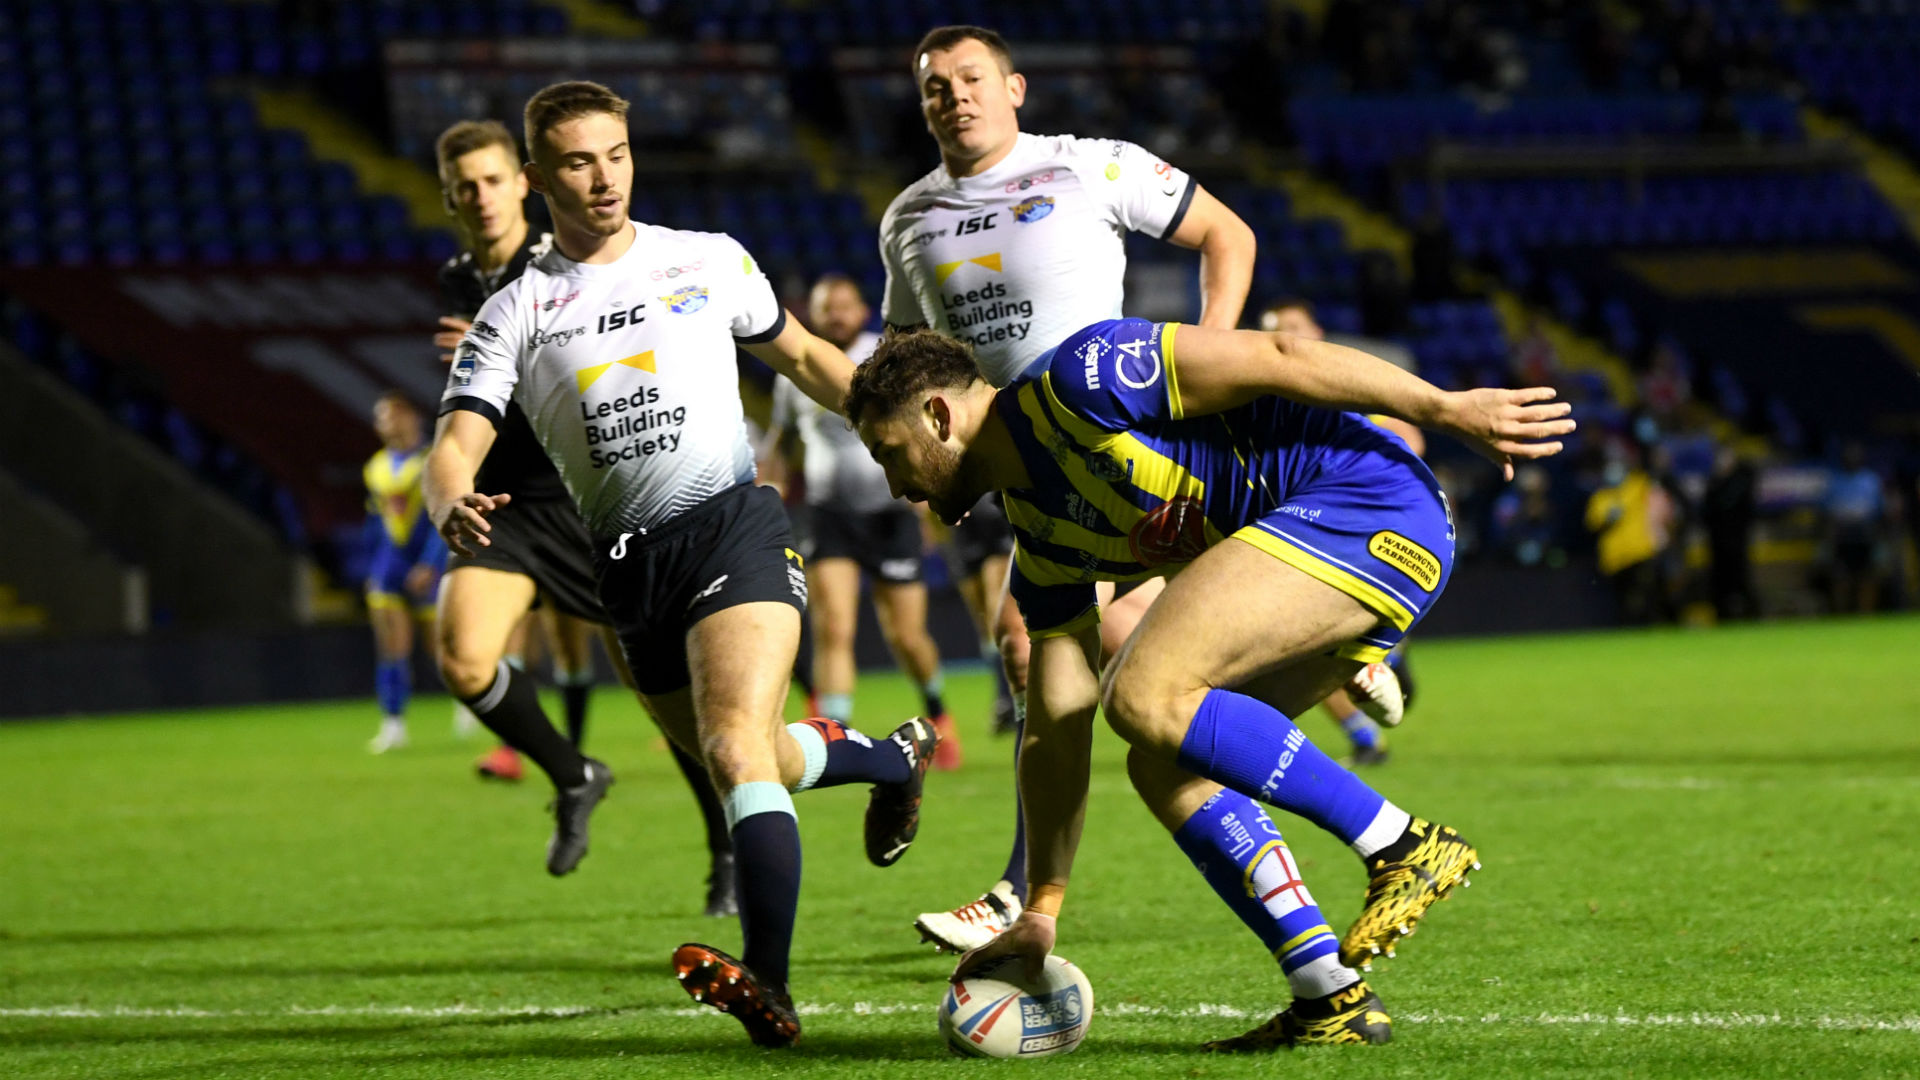 Wolves down youthful Rhinos, Hull KR beat Salford in game delayed for COVID-19 results